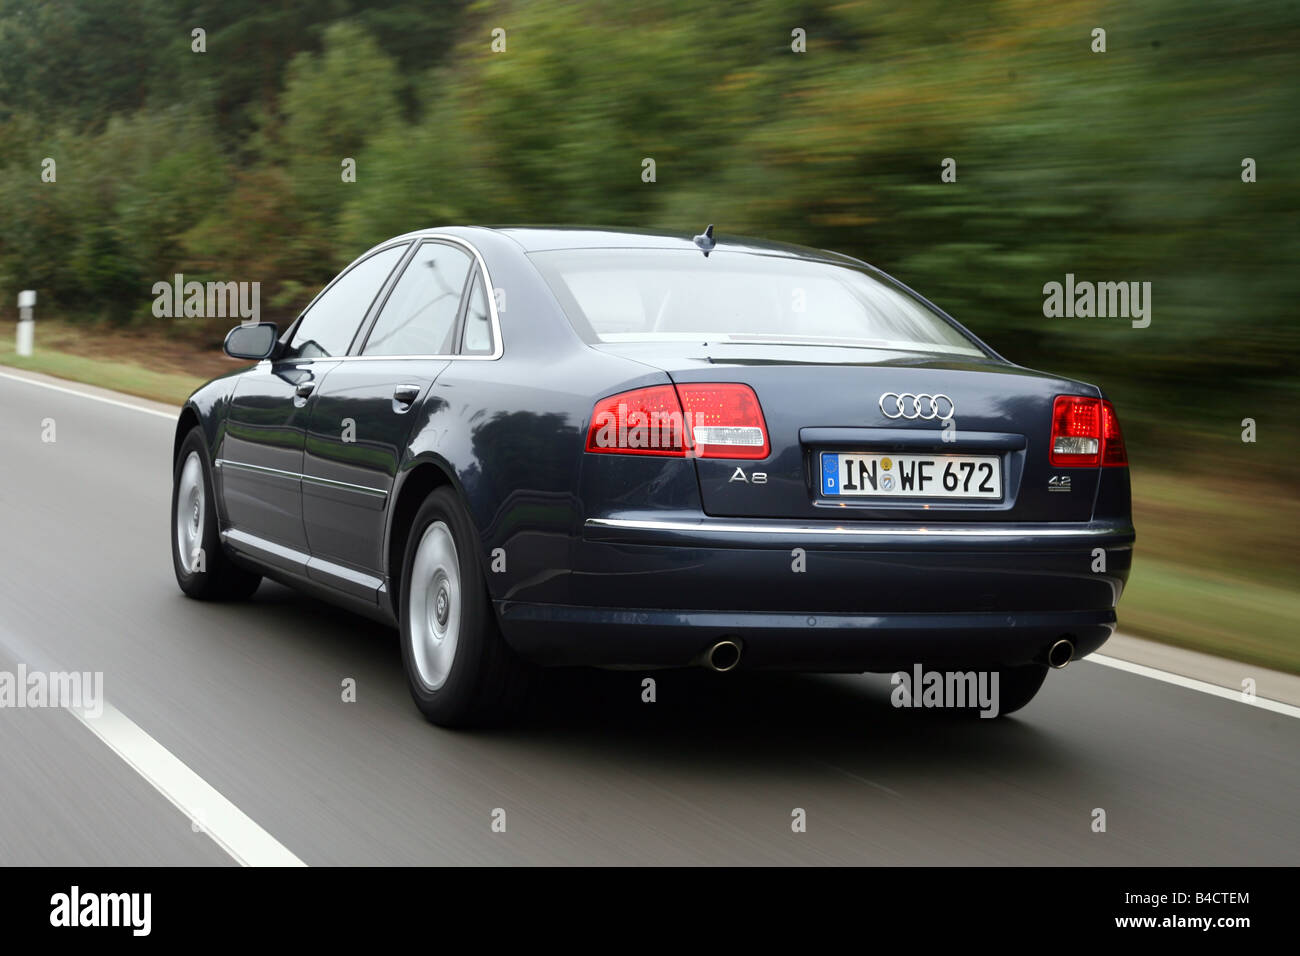 Audi a8 l 6 0 w12 quattro 2004 picture 3 of 5 rear angle image - Audi A8 4 2 Fsi Quattro Model Year 2006 Blue Moving Diagonal From